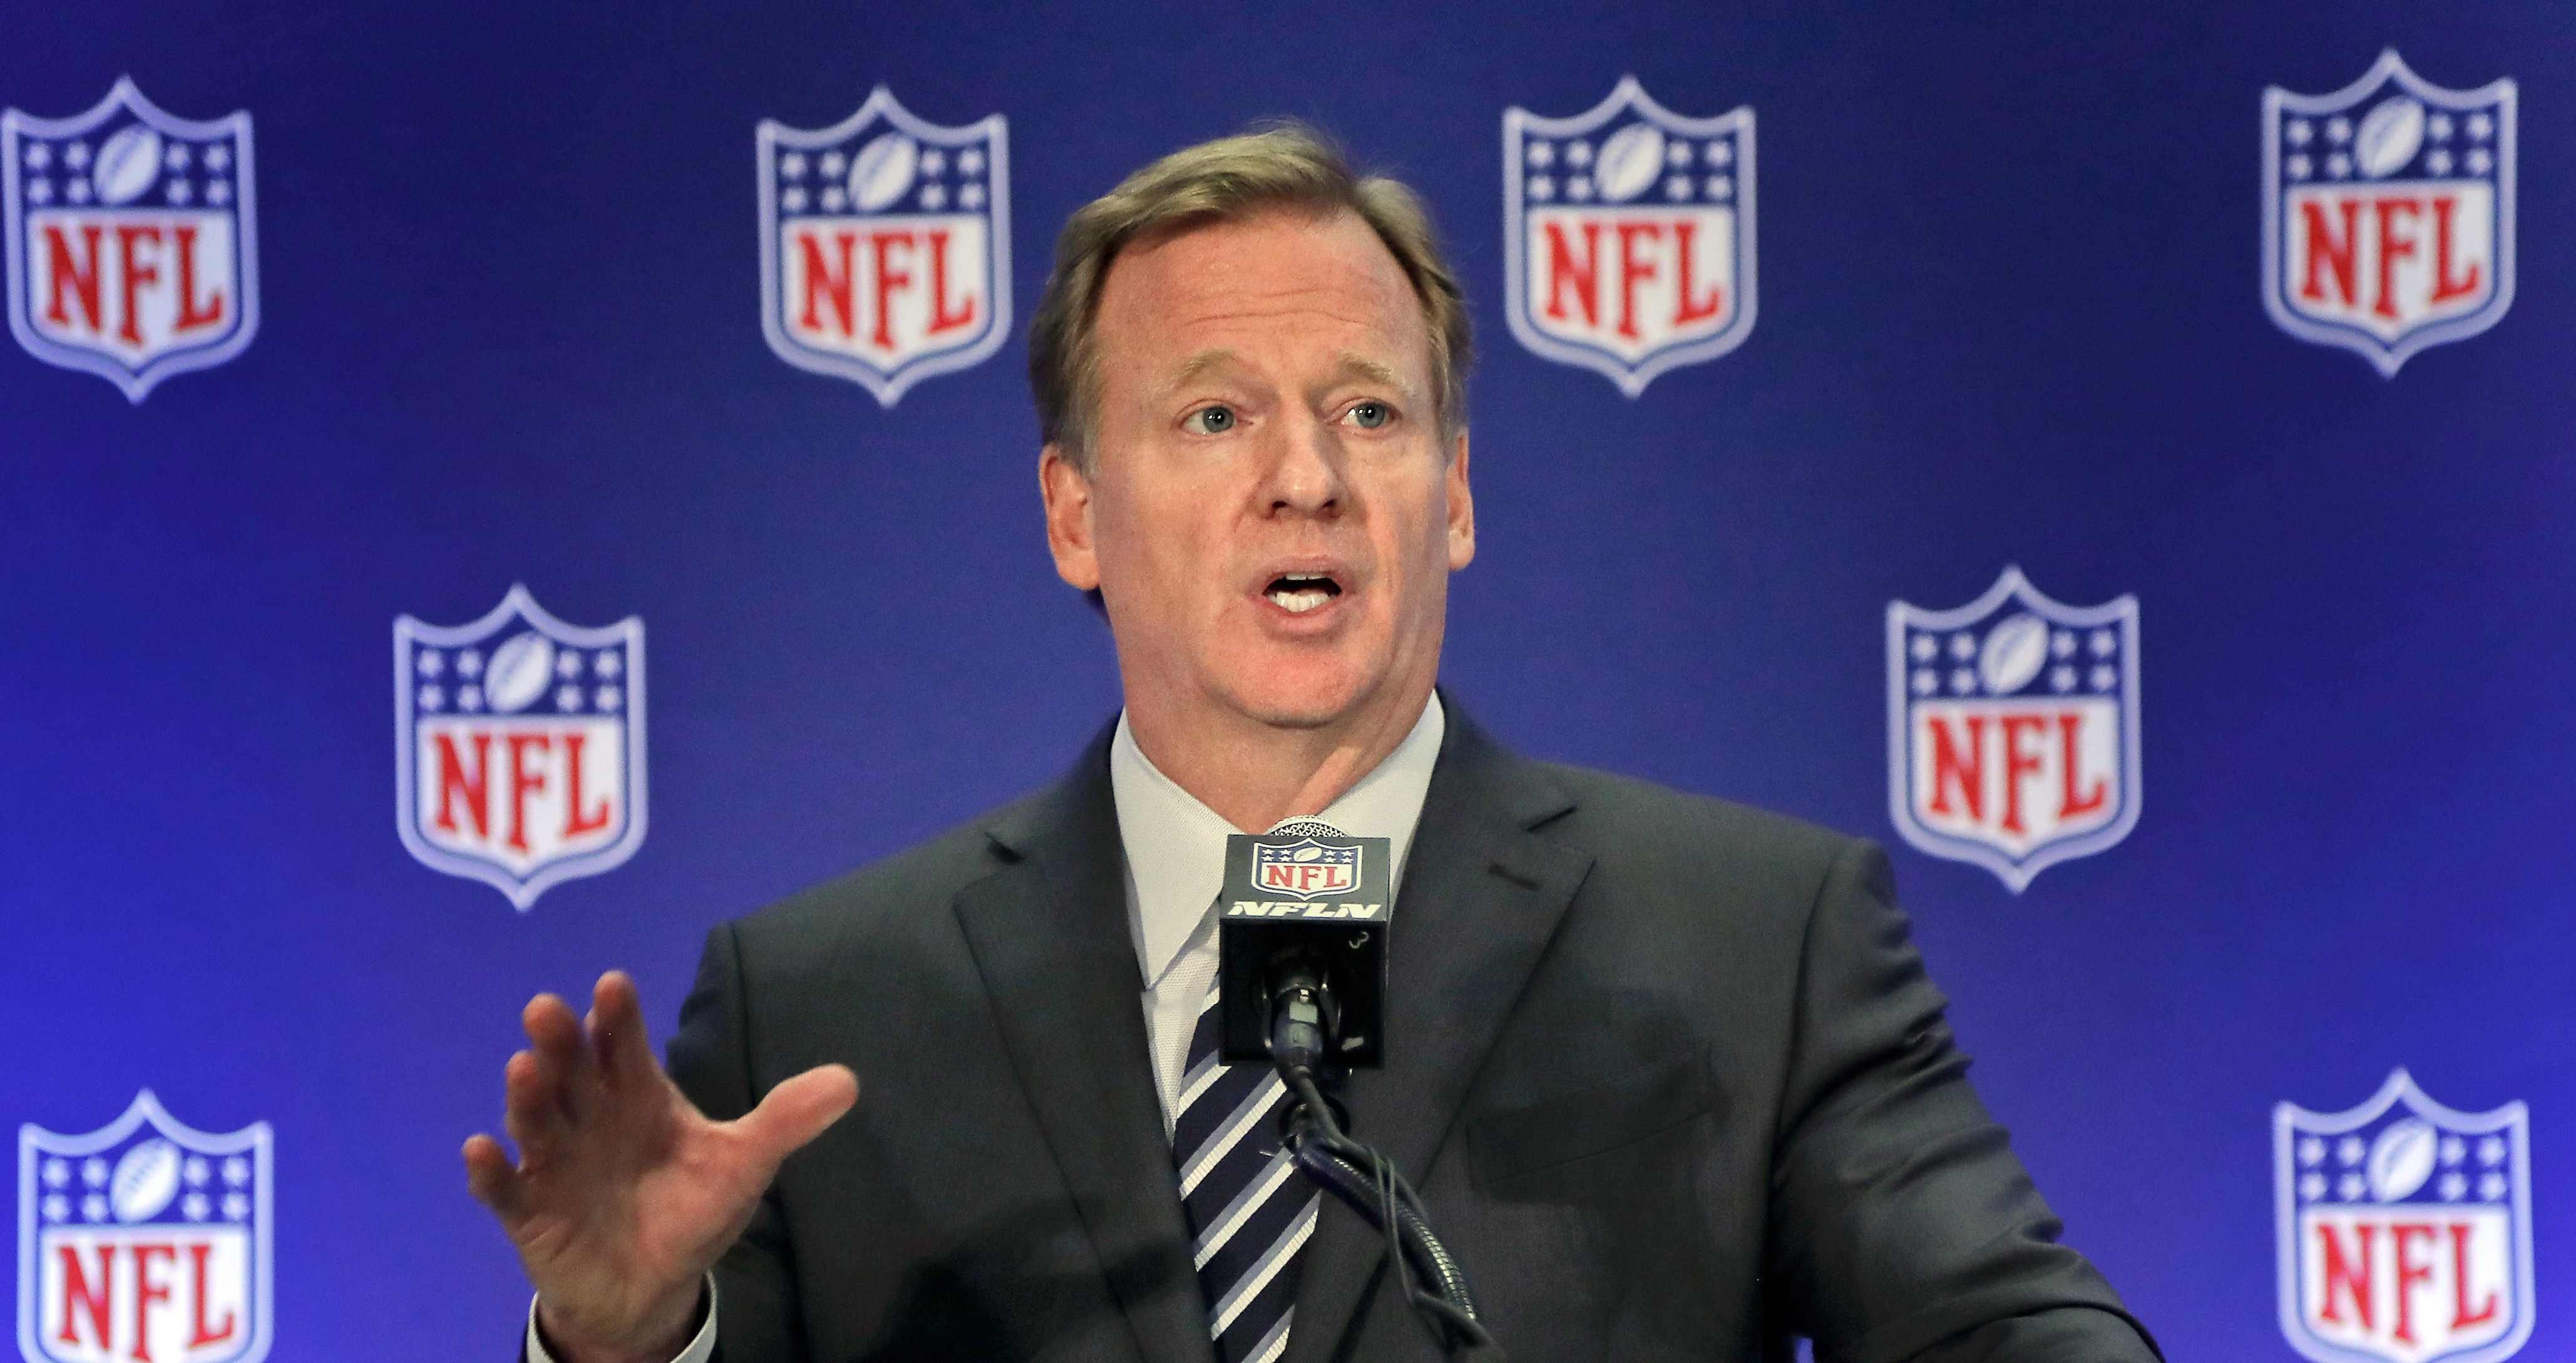 Roger Goddell wants to be paid almost $50 million annually.